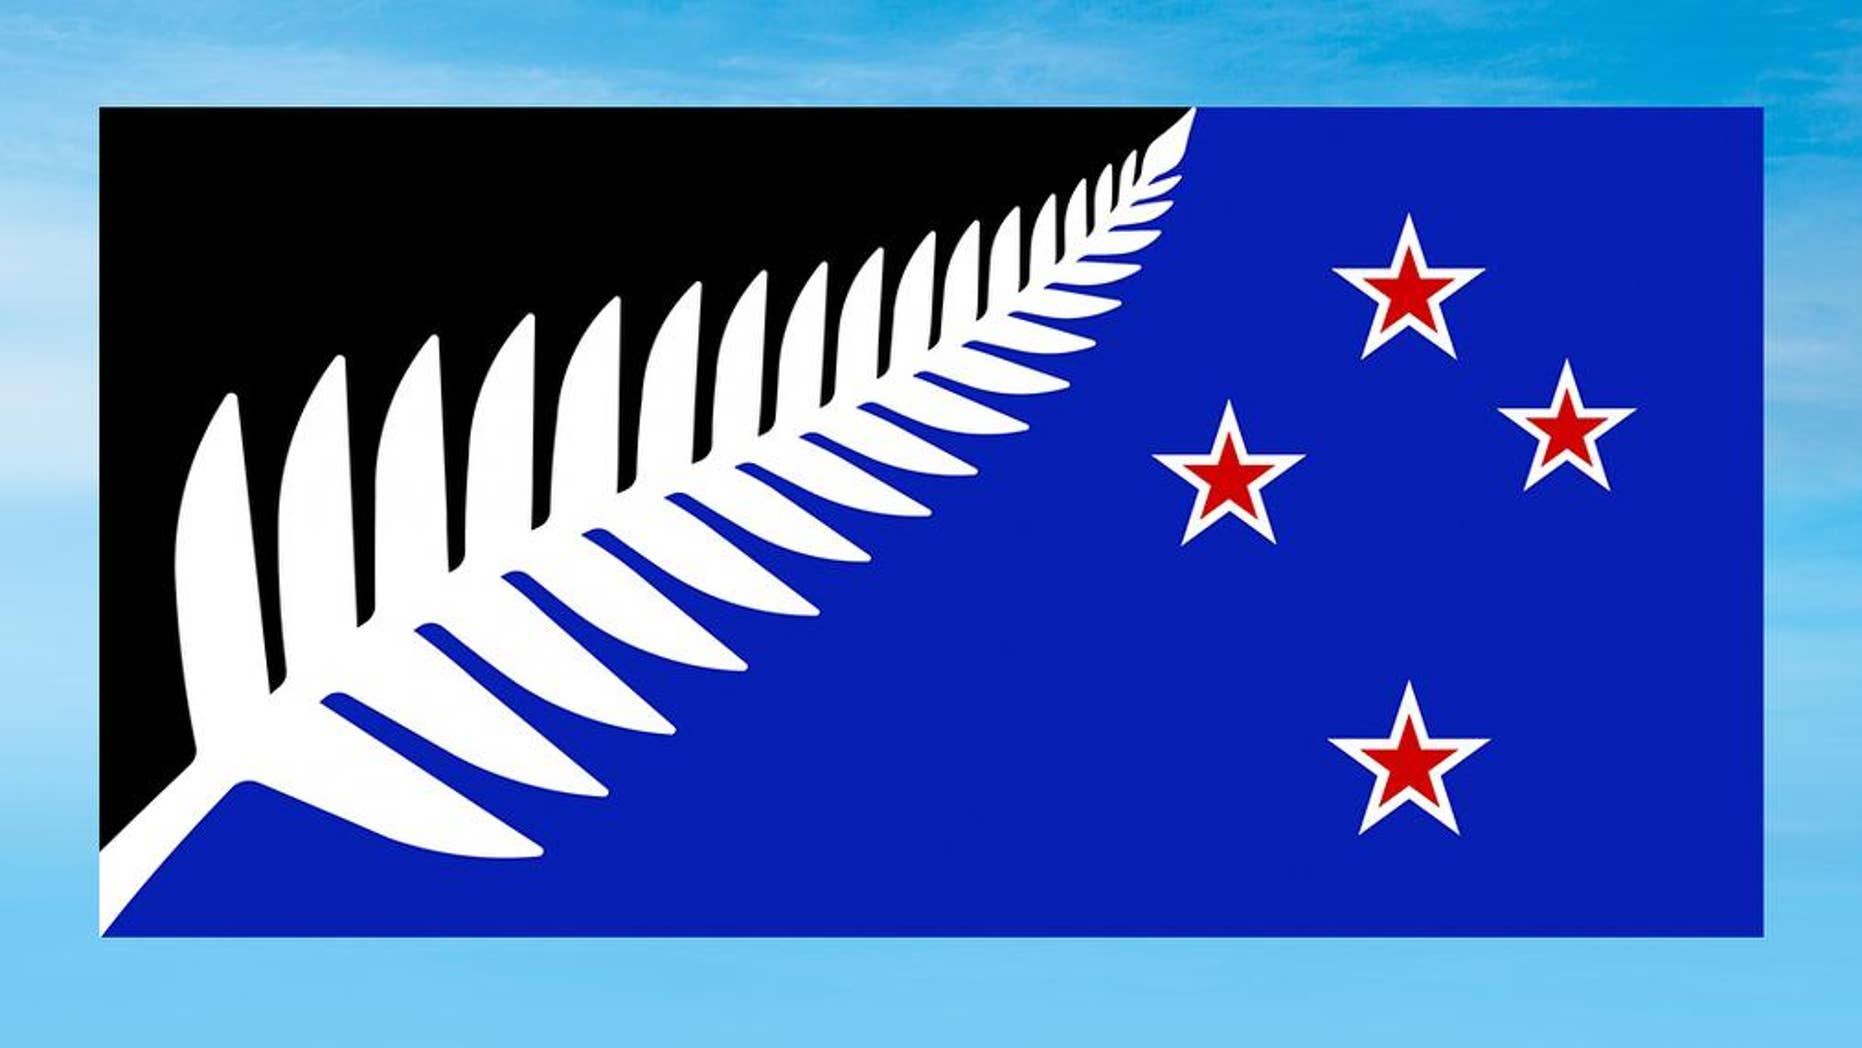 This undated illustration provided by the New Zealand Government shows a flag design; Silver Fern (Black, White and Blue) by Kyle Lockwood. Final results from a postal ballot were announced Tuesday, Dec. 15, 2015. The winning design features a silver fern and red stars on a black and blue background. The new design will now go head-to-head against the current flag in a national vote that will be held in March. (New Zealand Government via AP)